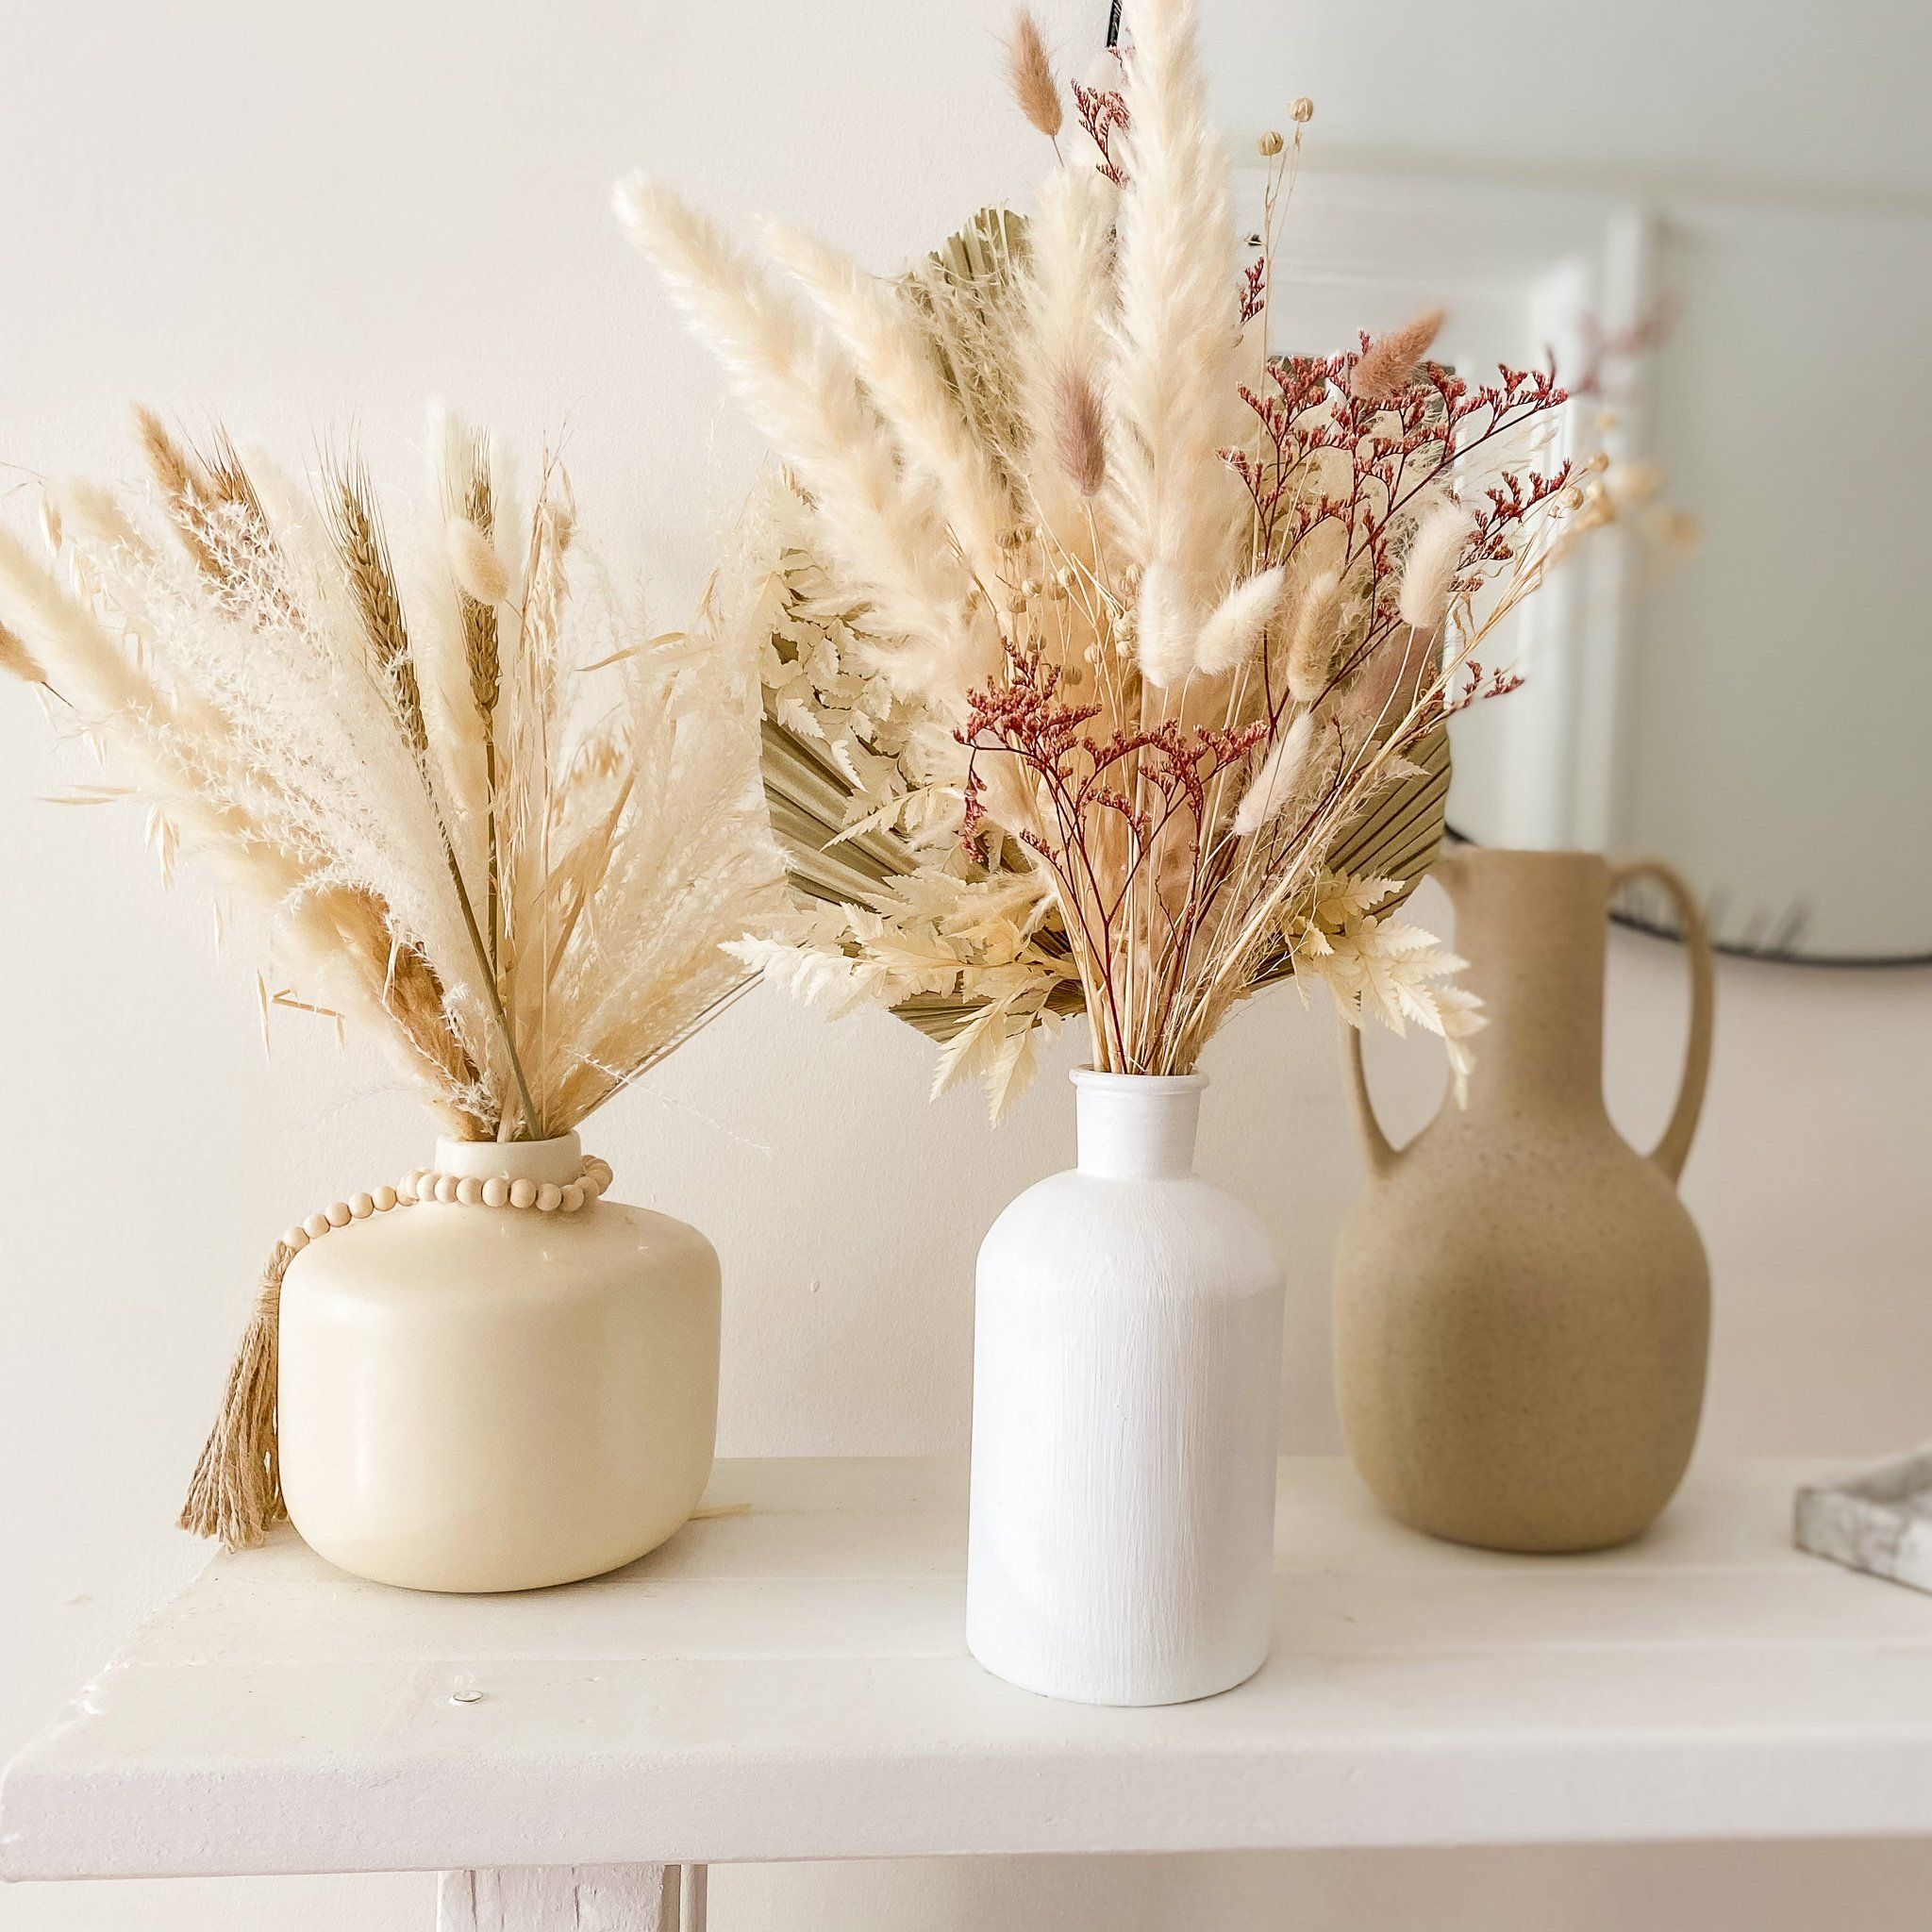 Photo of Naturally Dried Pampas Grass and Palm Bouquet for Home Decor and Wedding Decoration (Pink and White)